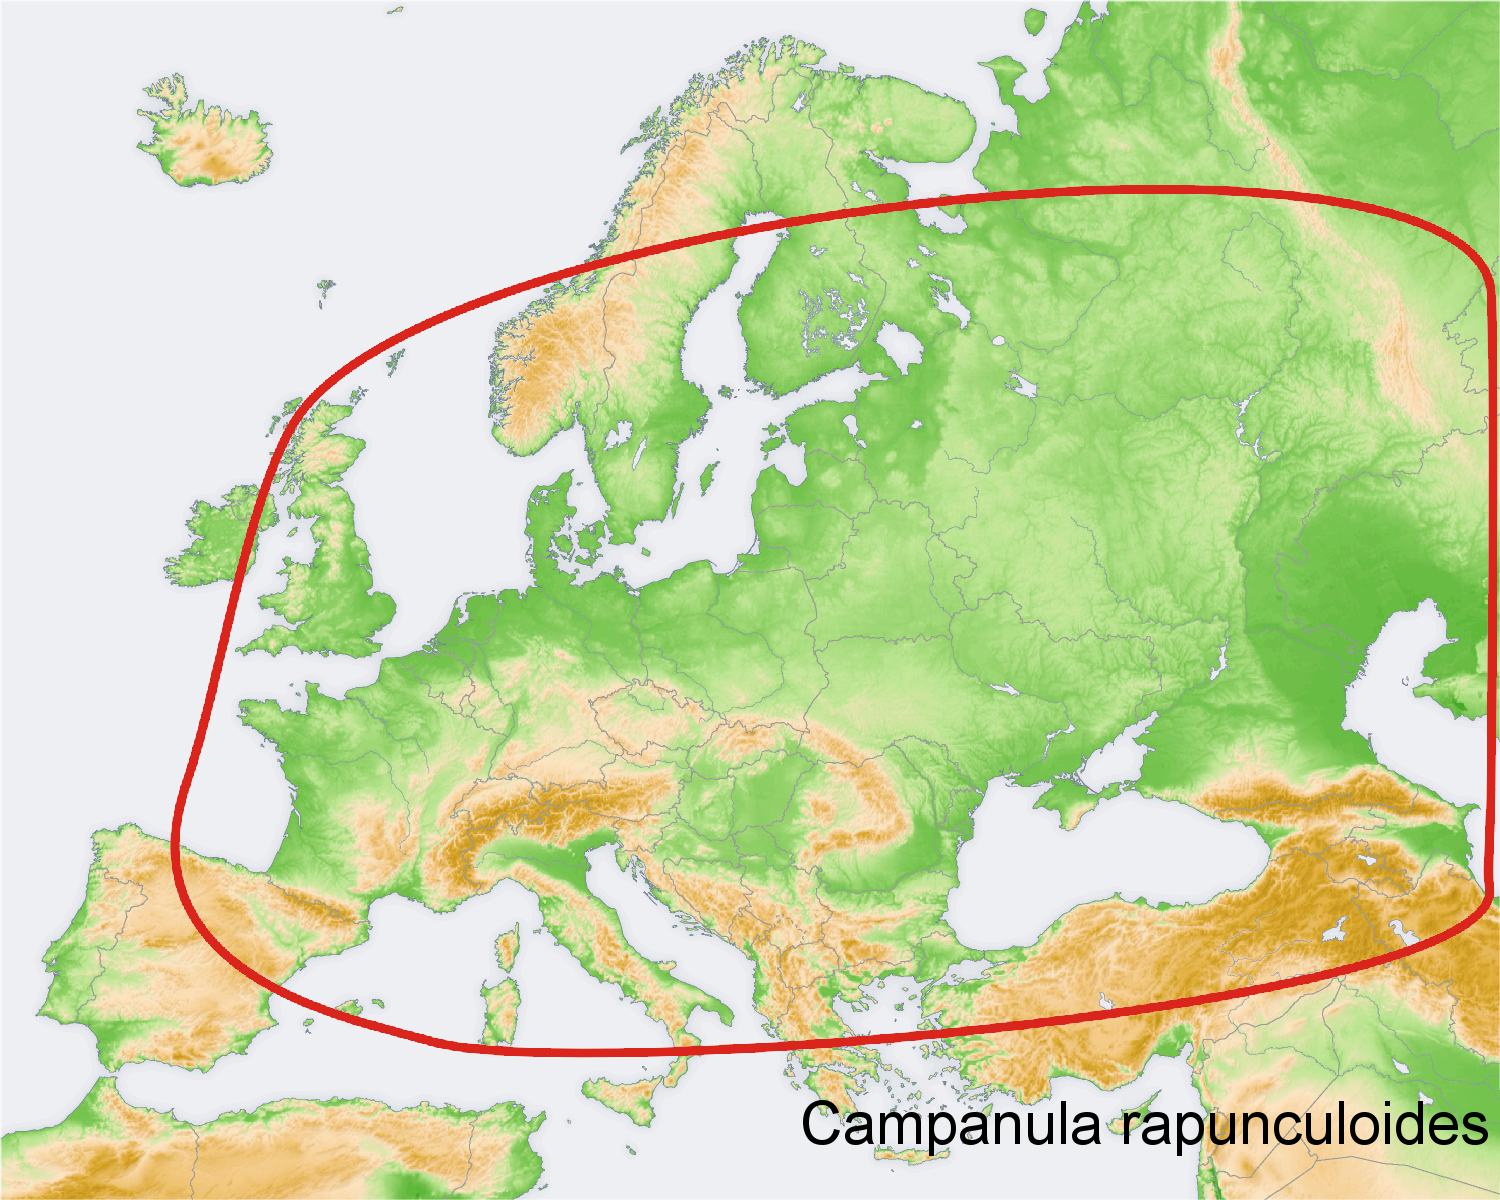 Datei:Distribution map Campanula rapunculoides.png – Wikipedia on